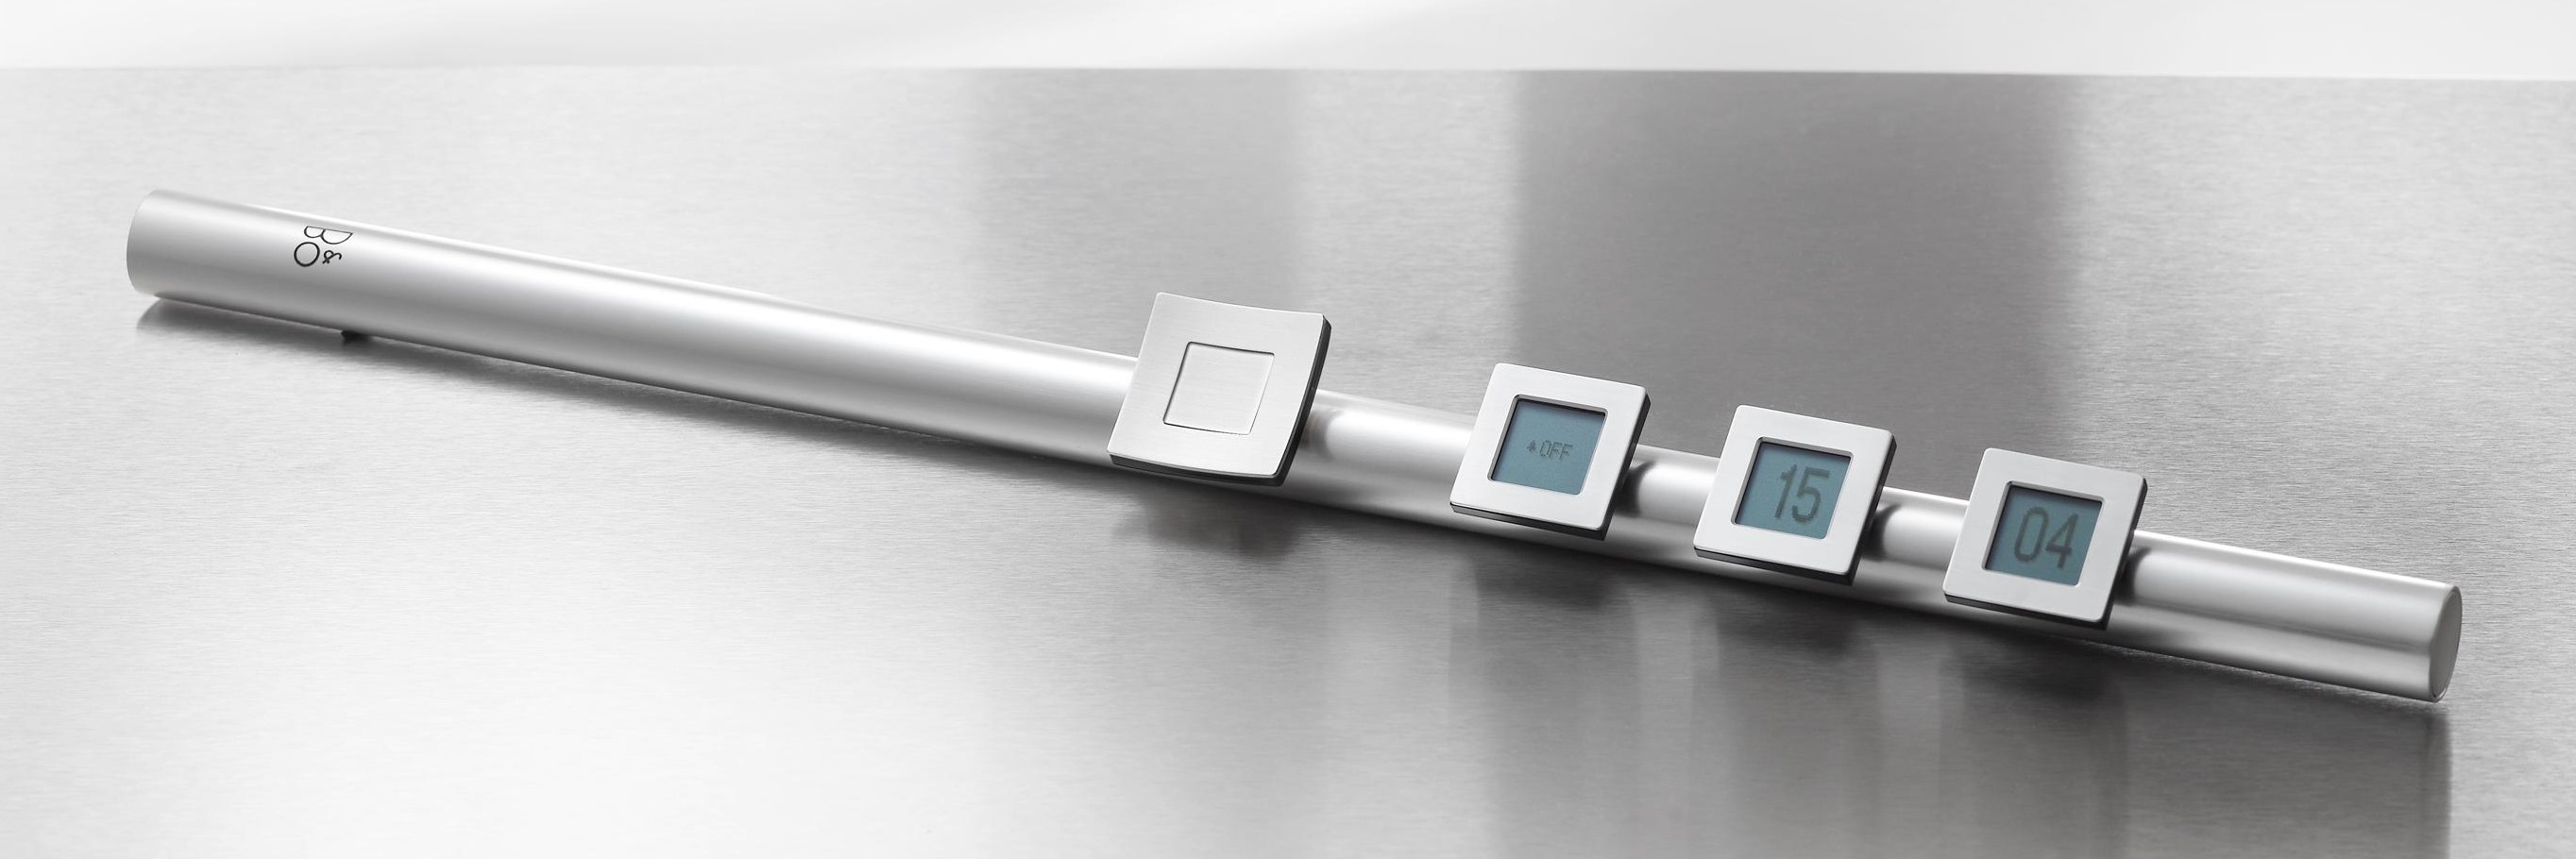 High End Alarm Clocks Bang And Olufsen Beotime Clock Remote Thinks Its A Flute